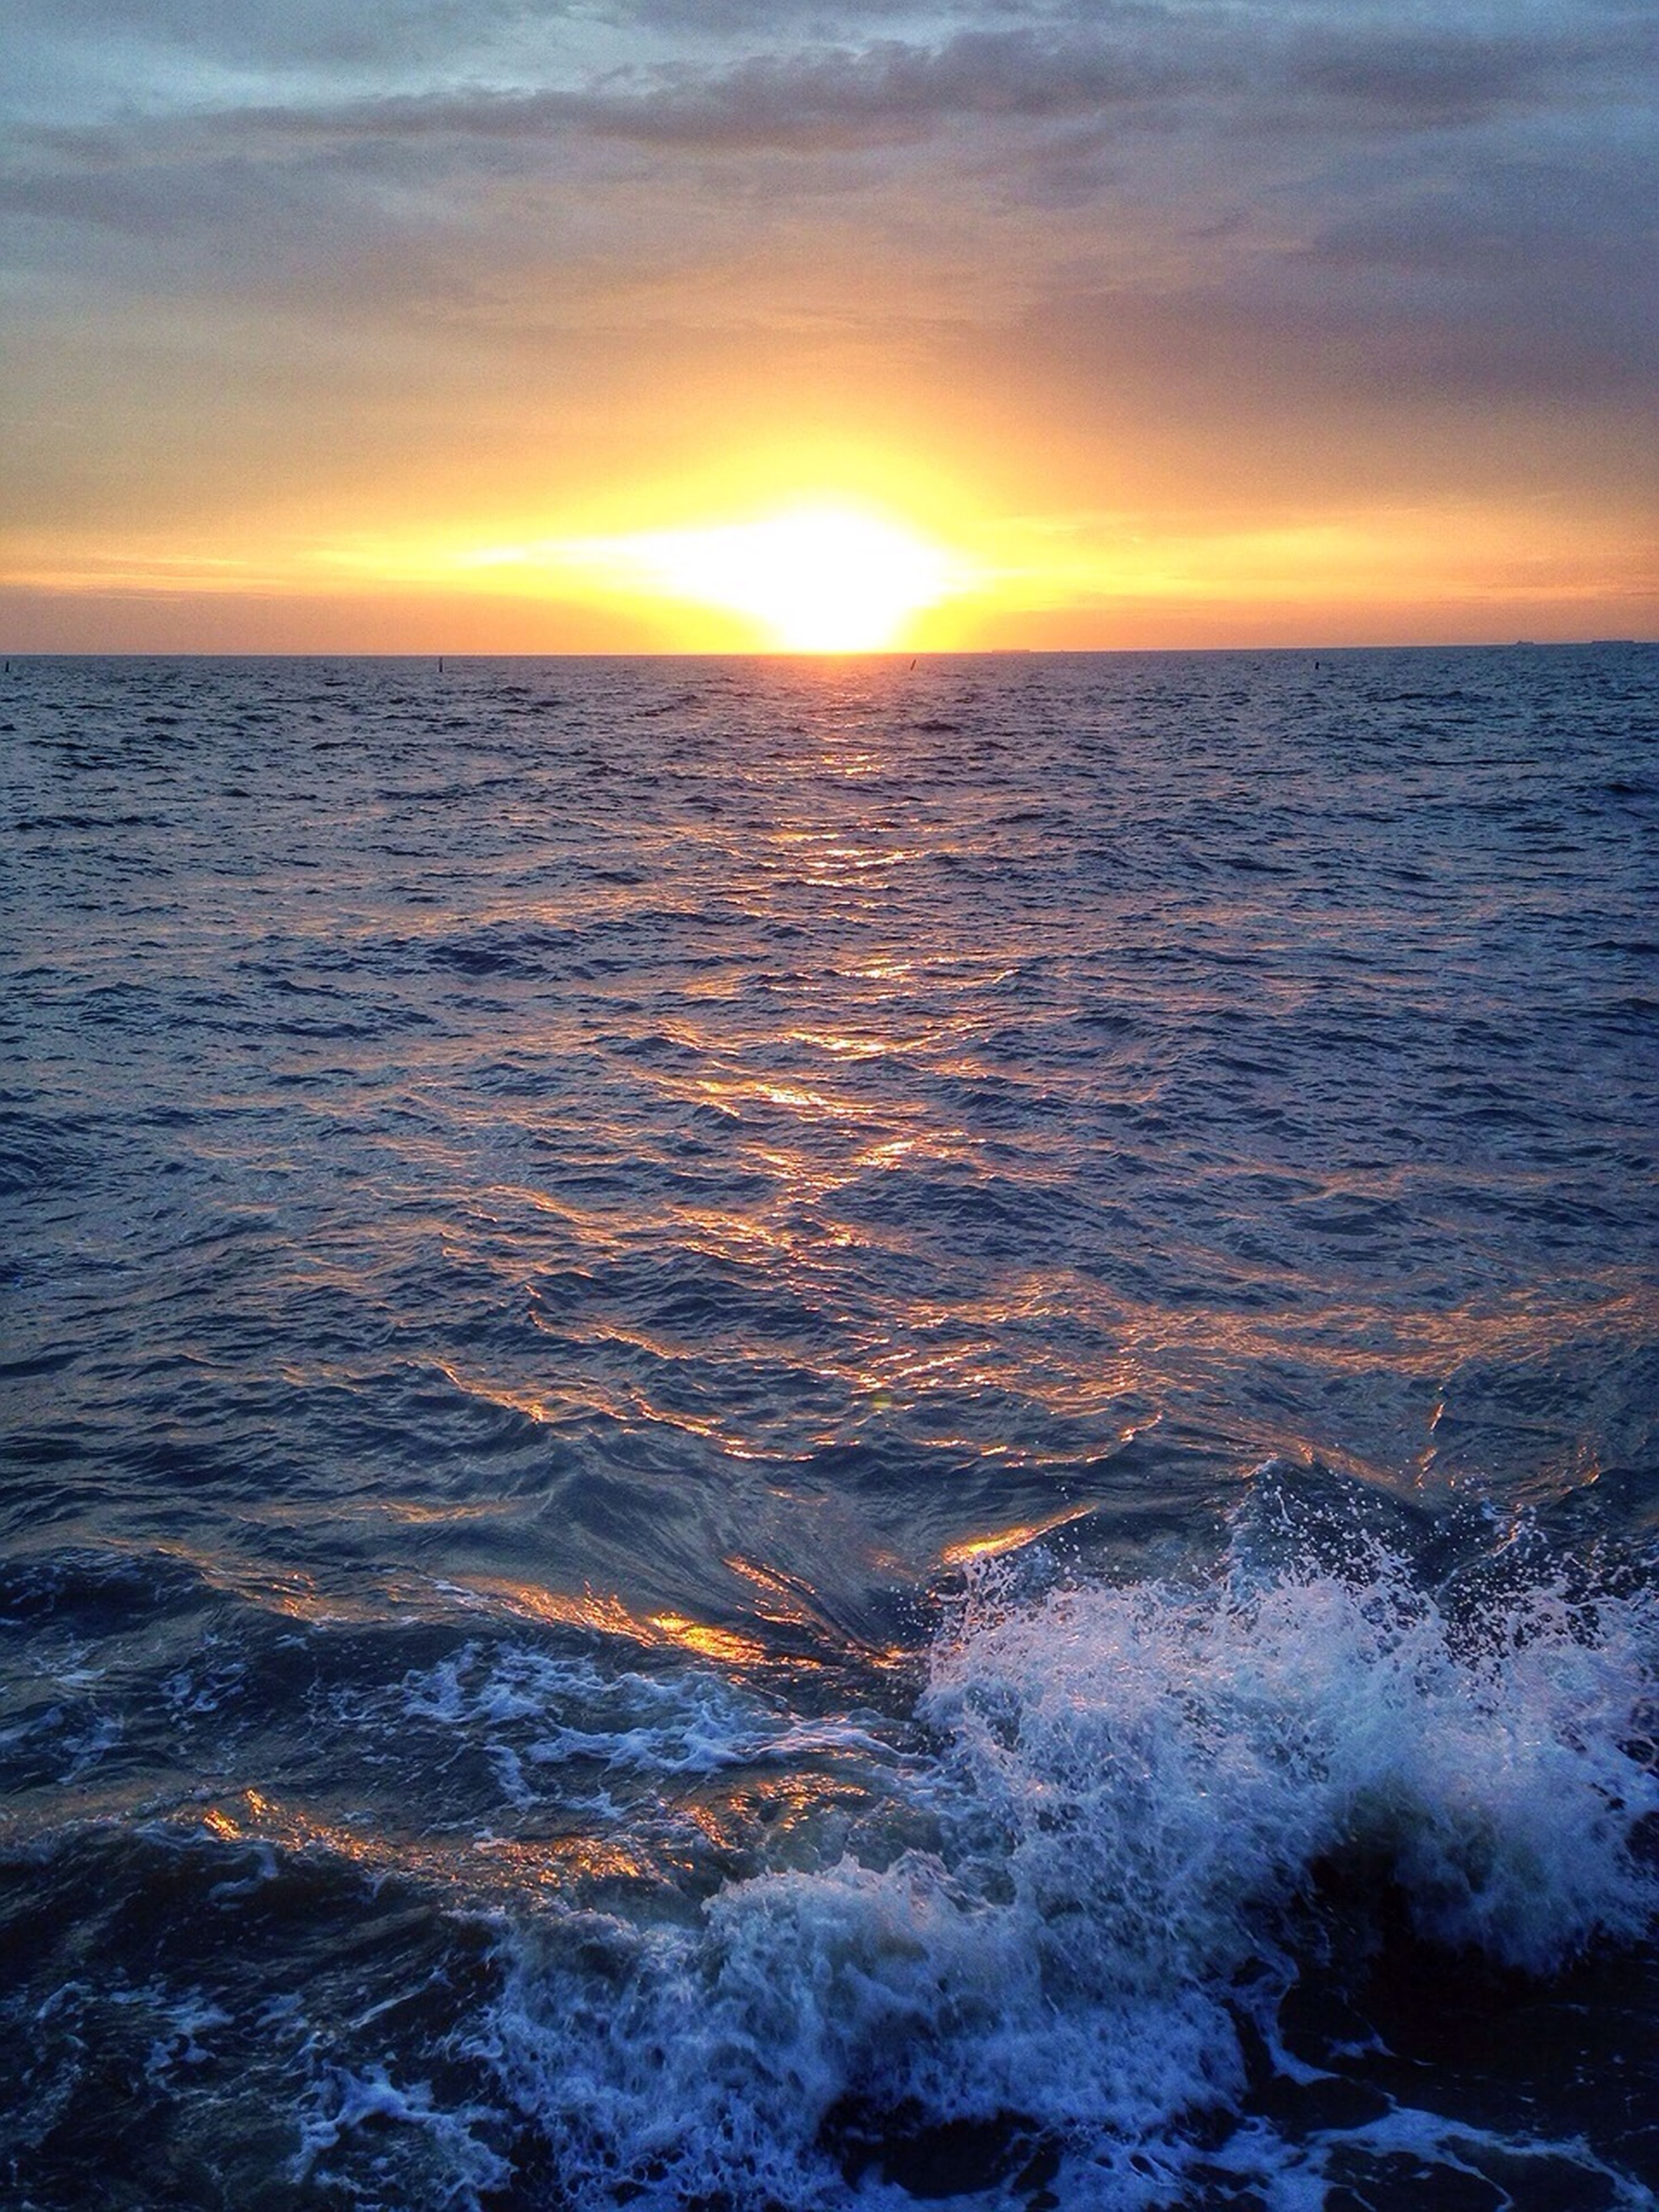 sea, water, sunset, horizon over water, scenics, beauty in nature, tranquil scene, sky, tranquility, sun, waterfront, orange color, rippled, nature, idyllic, seascape, wave, reflection, cloud - sky, sunlight